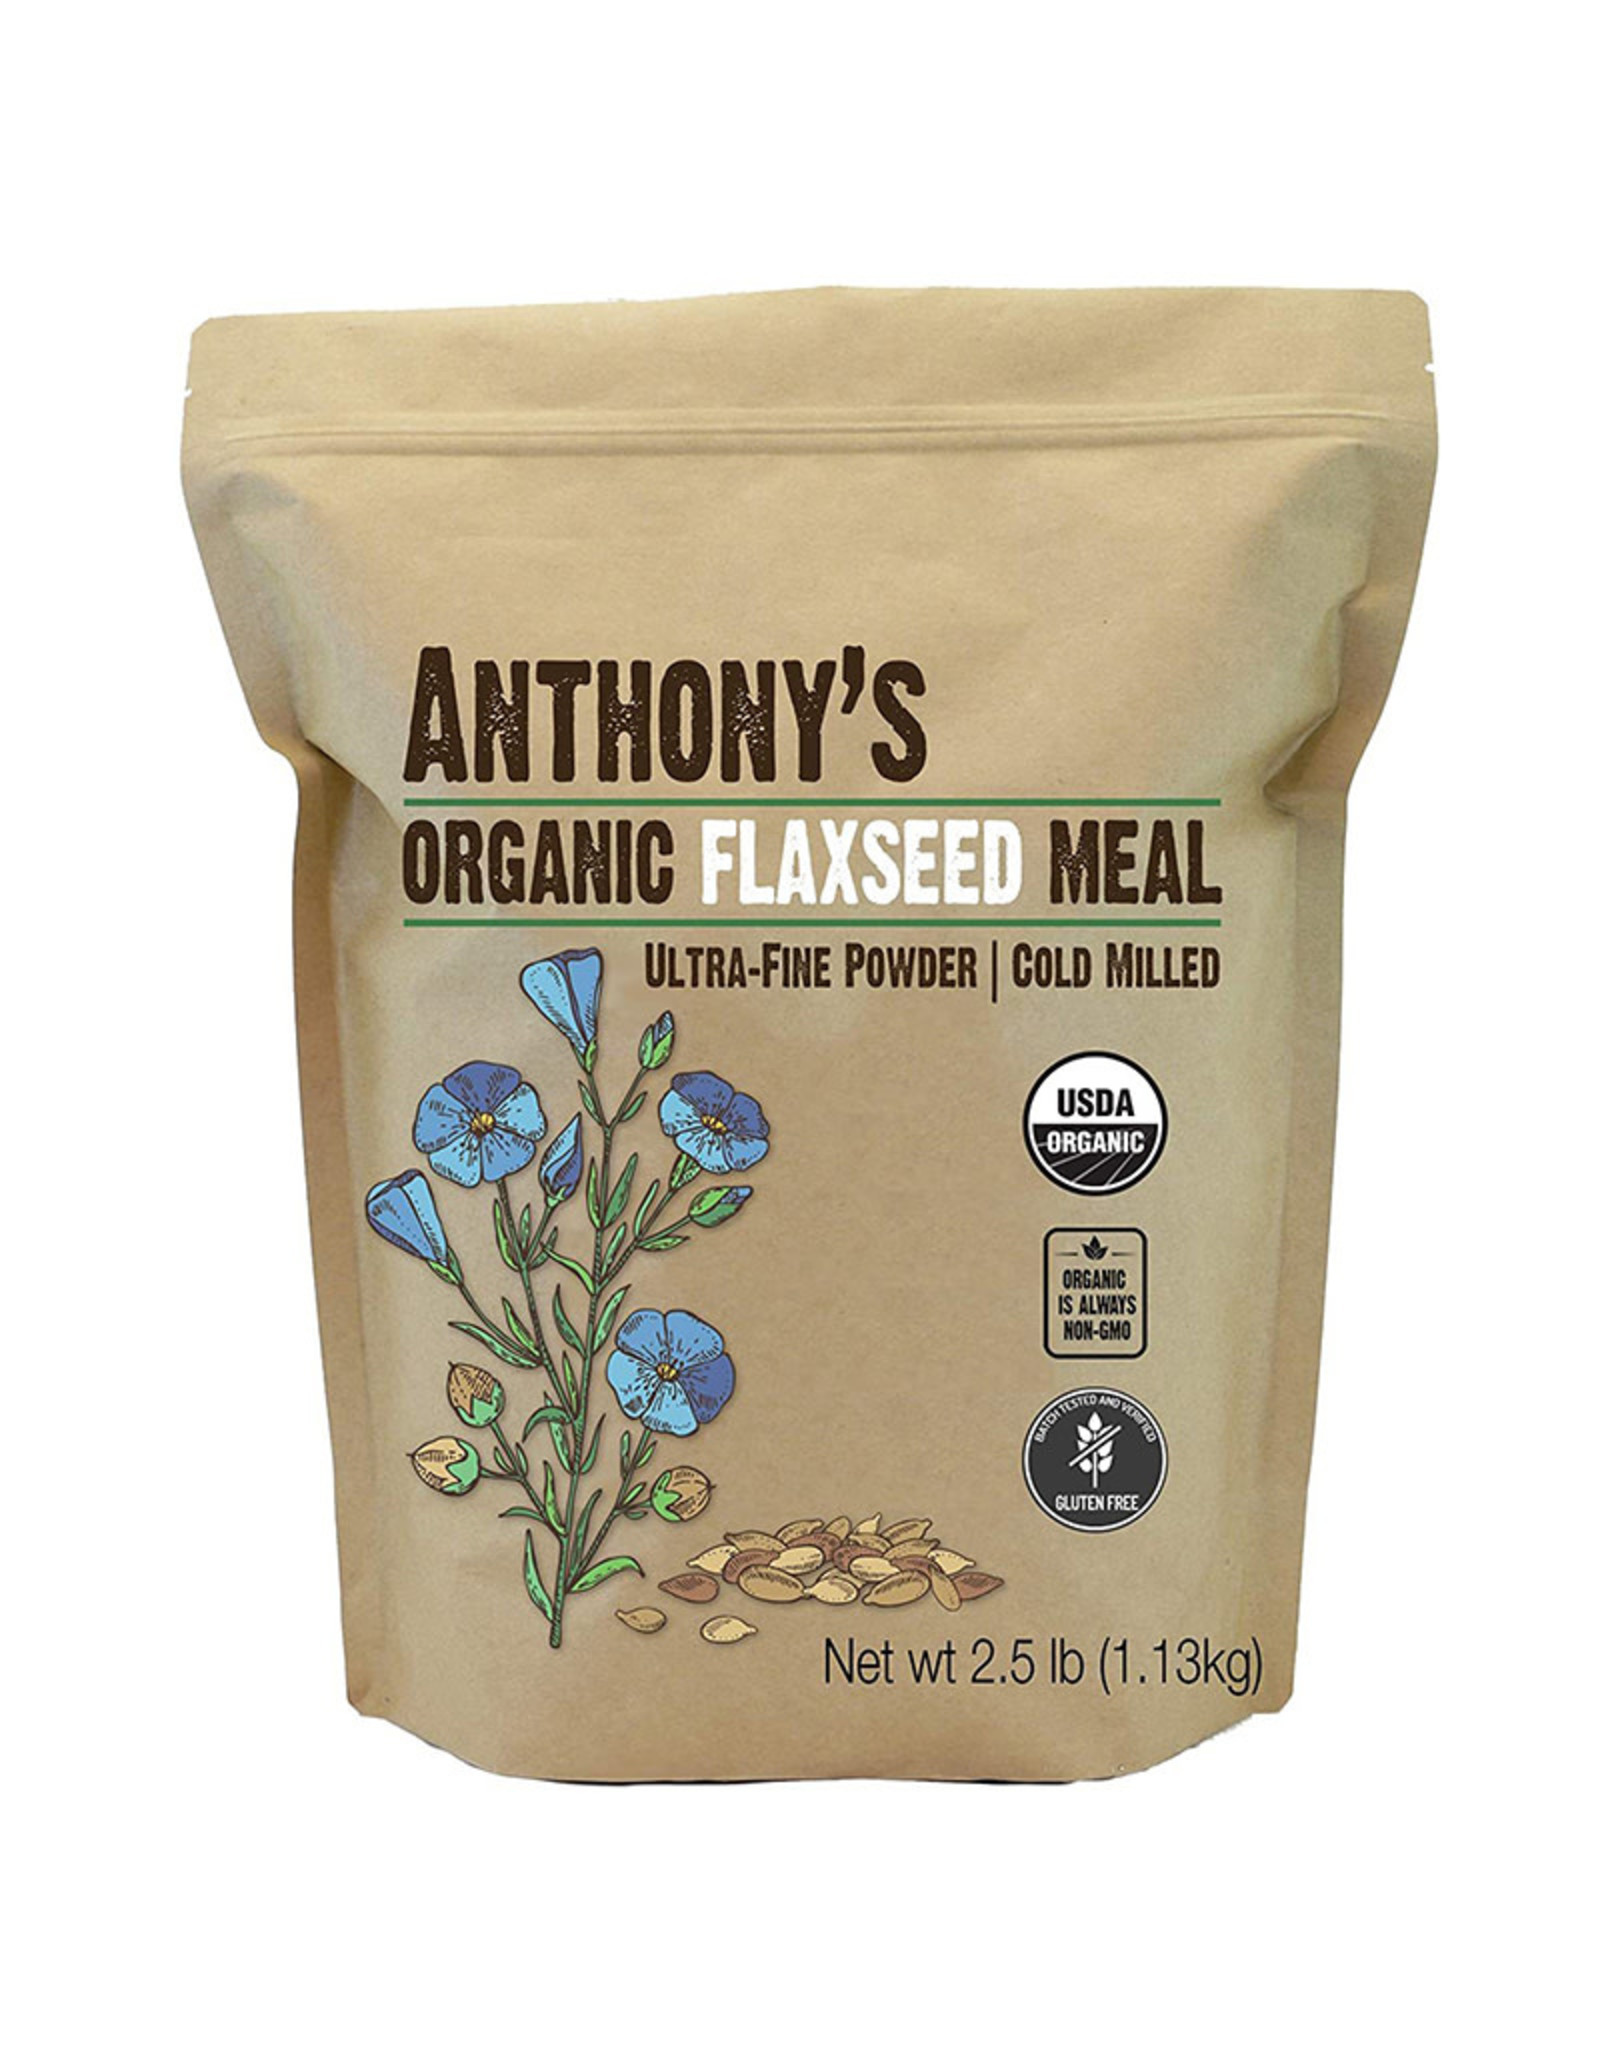 Anthonys Goods Anthonys Goods - Organic Flaxseed Meal (1.13kg)